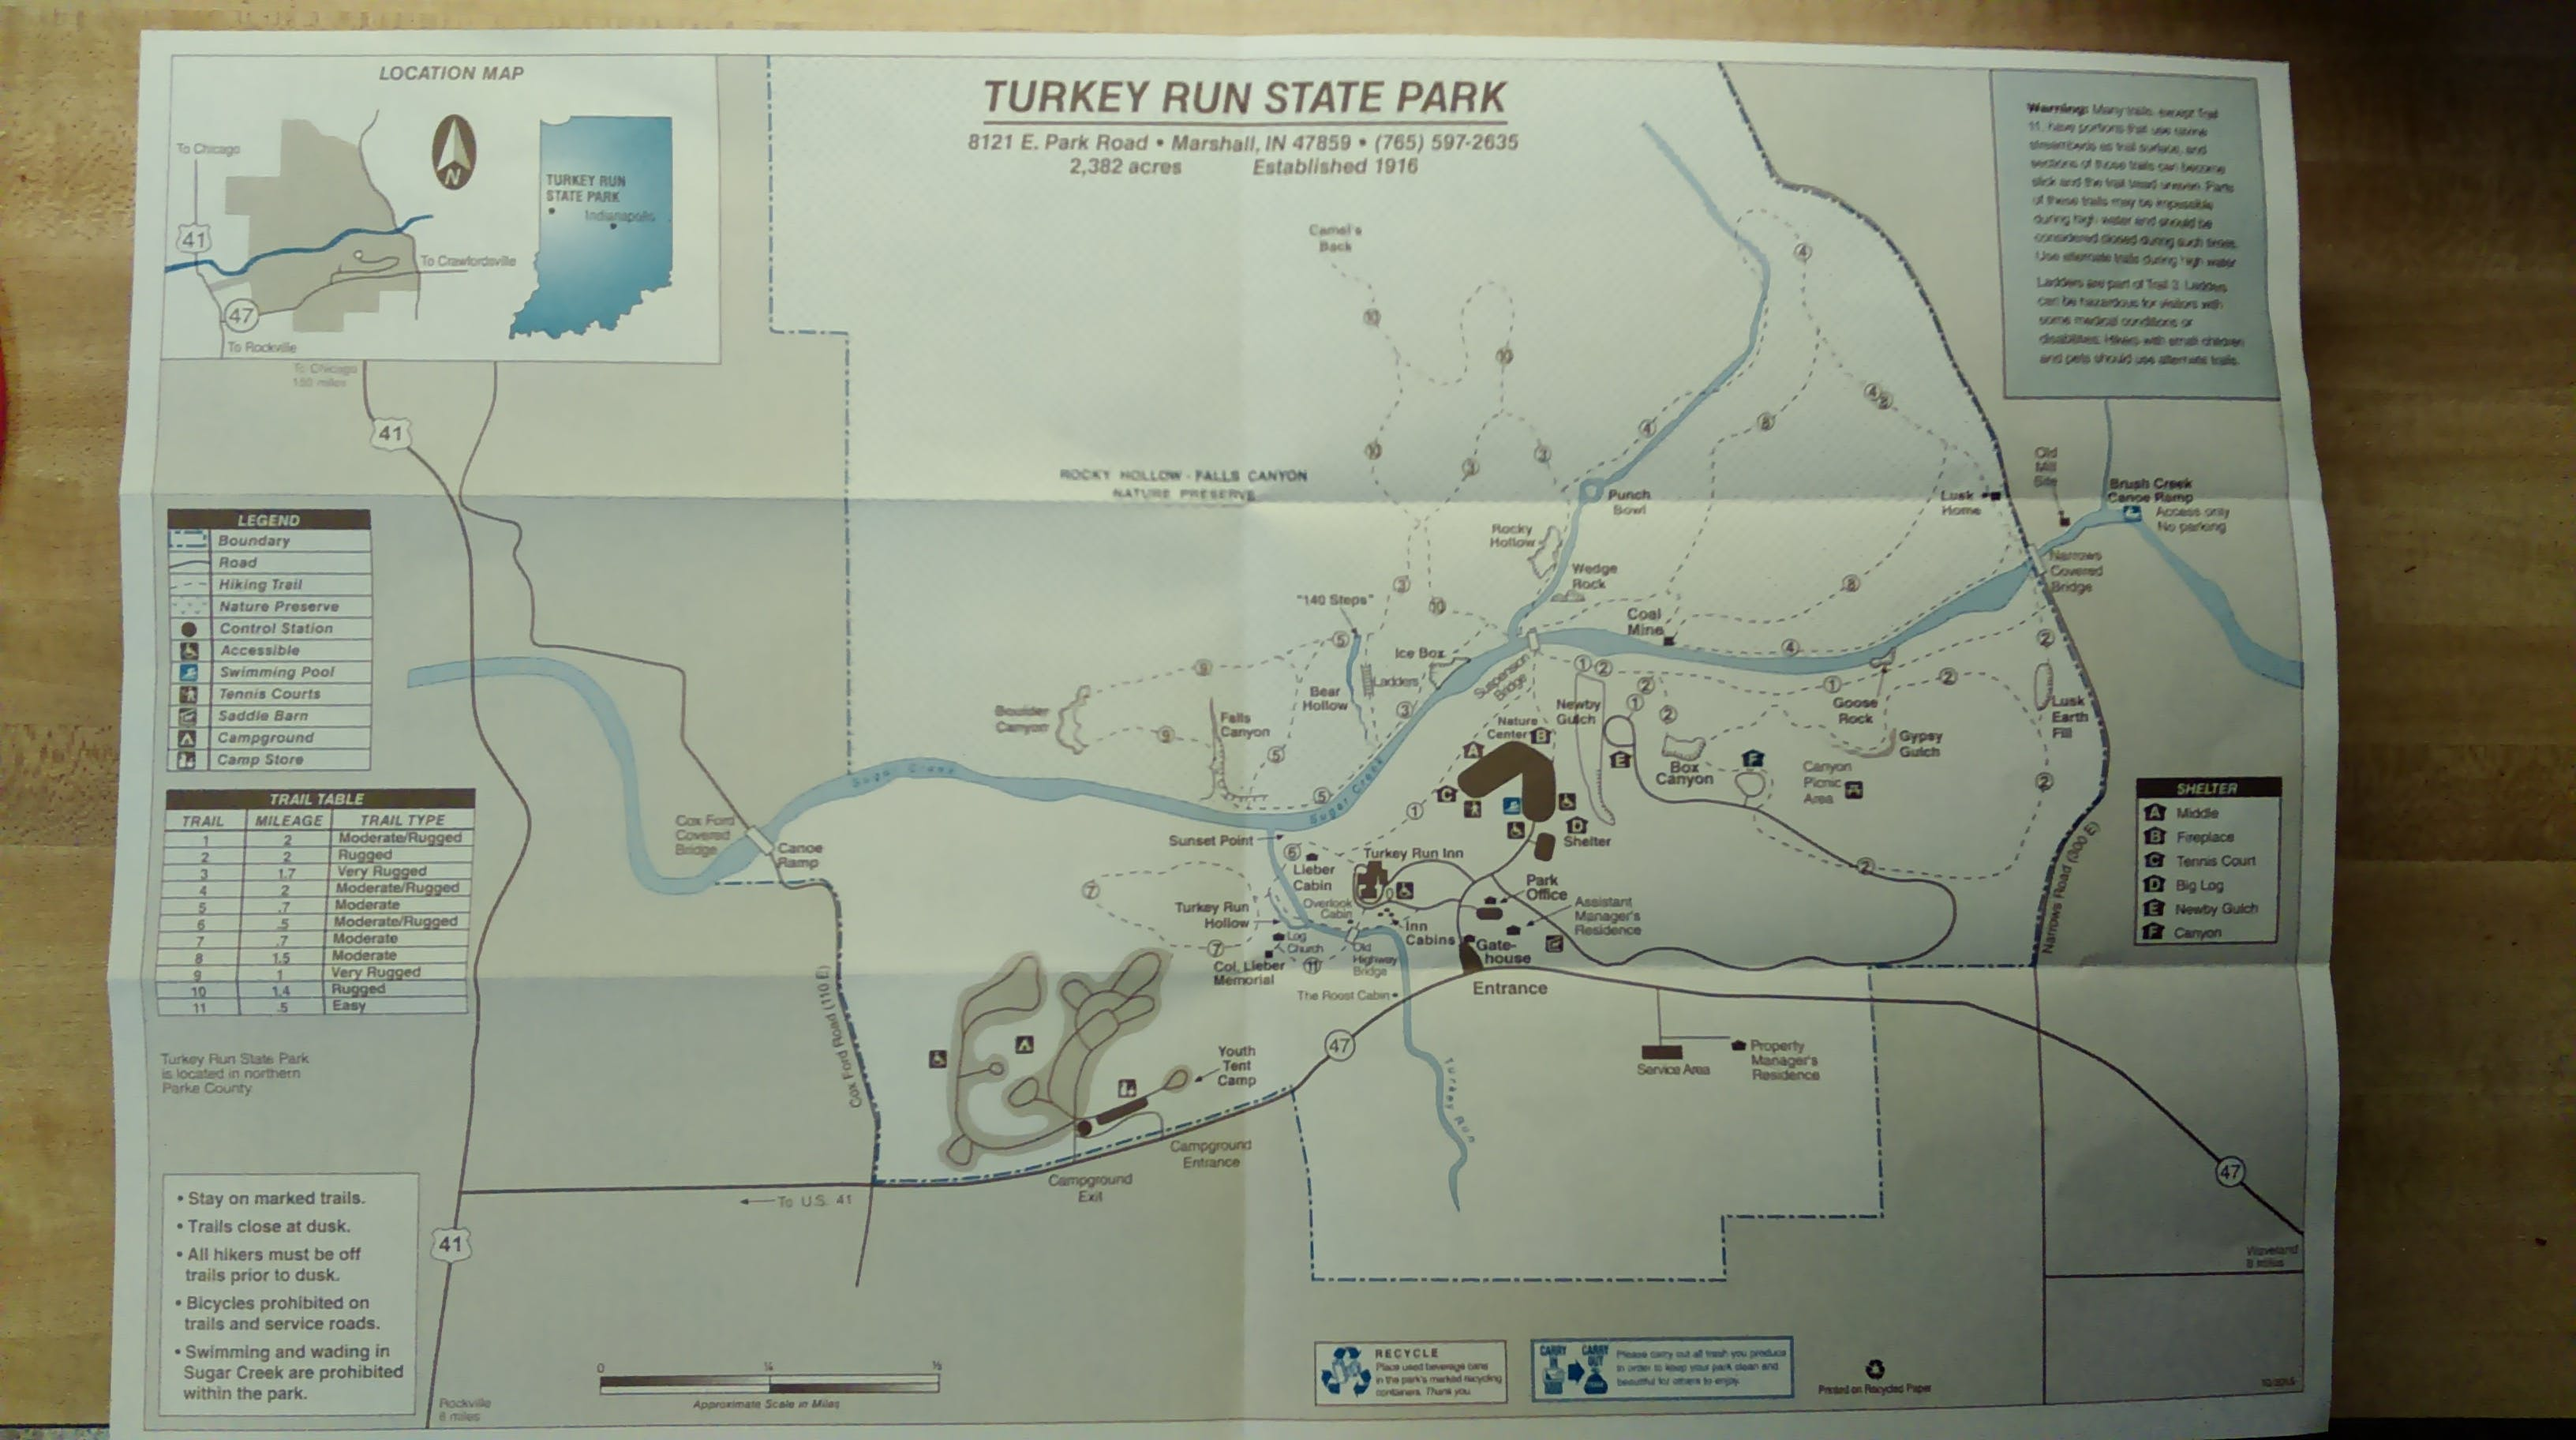 Photo of Turkey Run State Park by Jon H. on ambarli turkey map, indiana state park family cabins, turkey run state park trail map, indiana map showing state parks, indiana dunes state park map, indiana state wild animal, indiana shades state park map, indiana chain o'lakes state park map, indiana wildlife, turkey run campground map, indiana mounds state park map, indiana turkey person, indiana state campgrounds map, brookville indiana state park map, indiana brown county state park map, indiana state national parks, cagles mill lake map, big indiana state map, turkey country map, indiana state map printable,